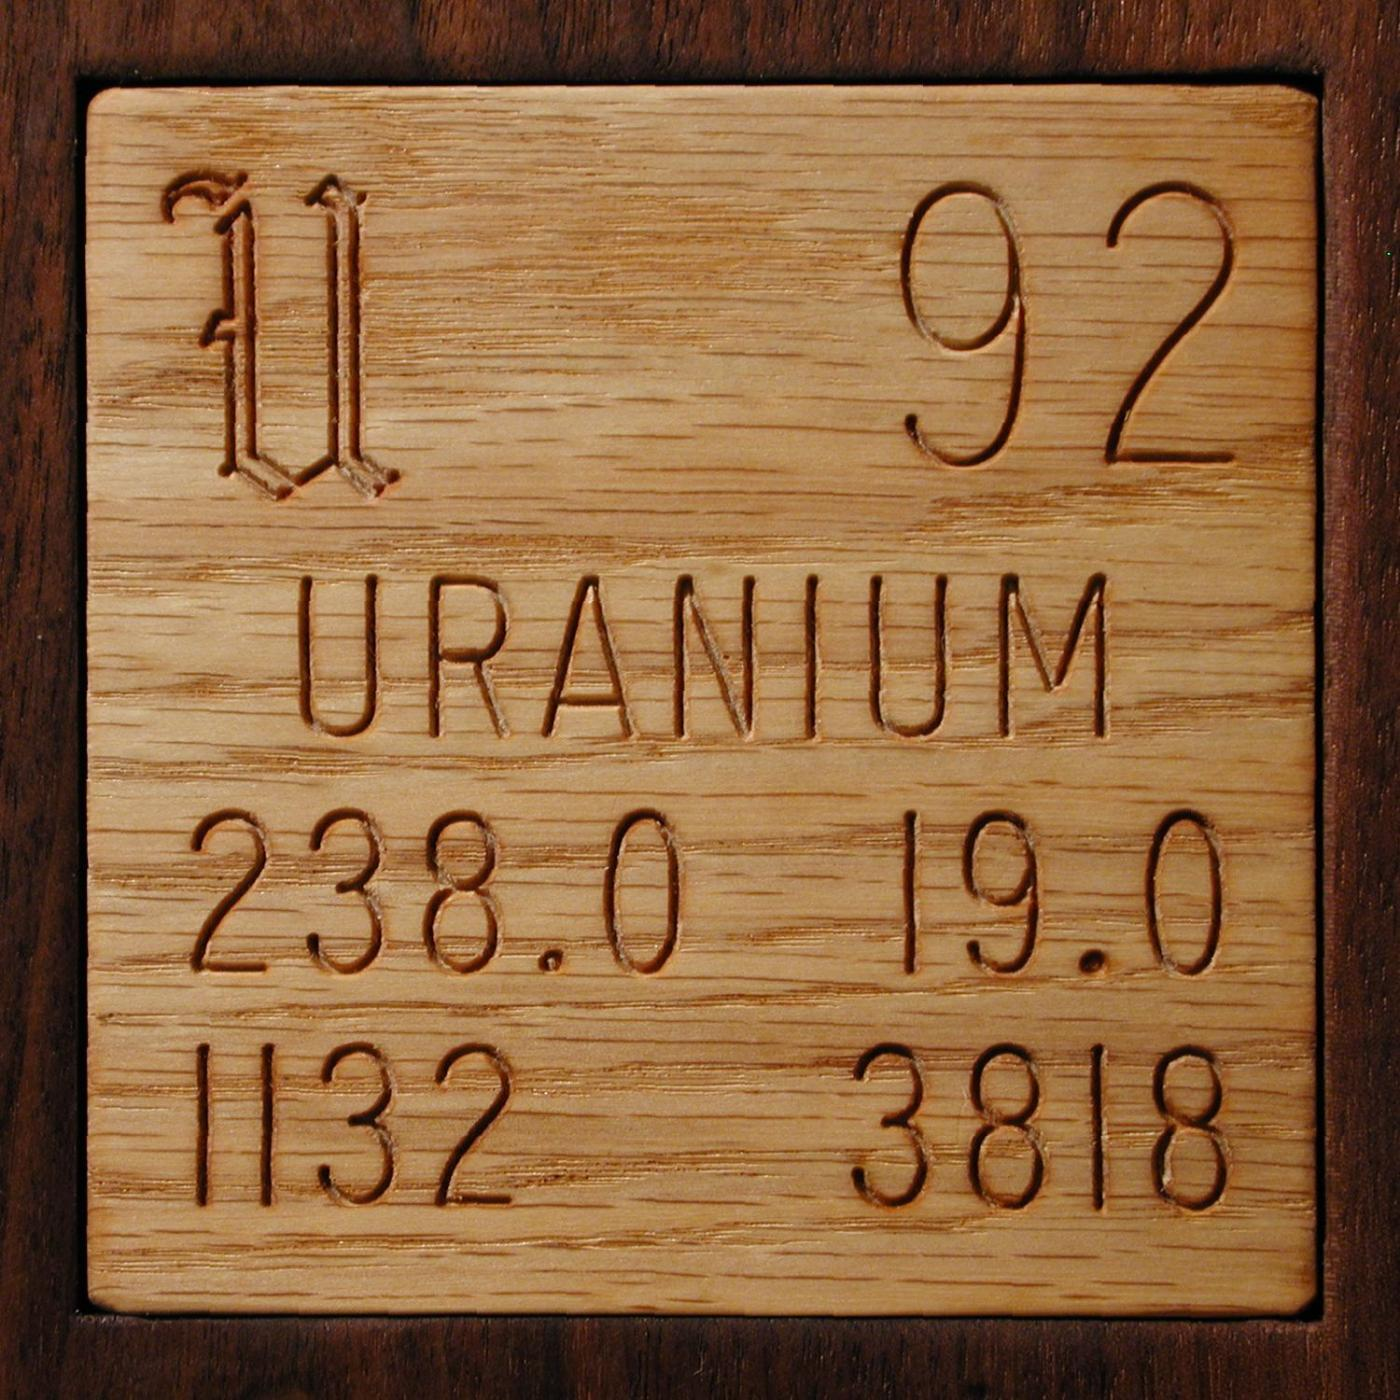 Facts pictures stories about the element uranium in the periodic uranium gamestrikefo Image collections